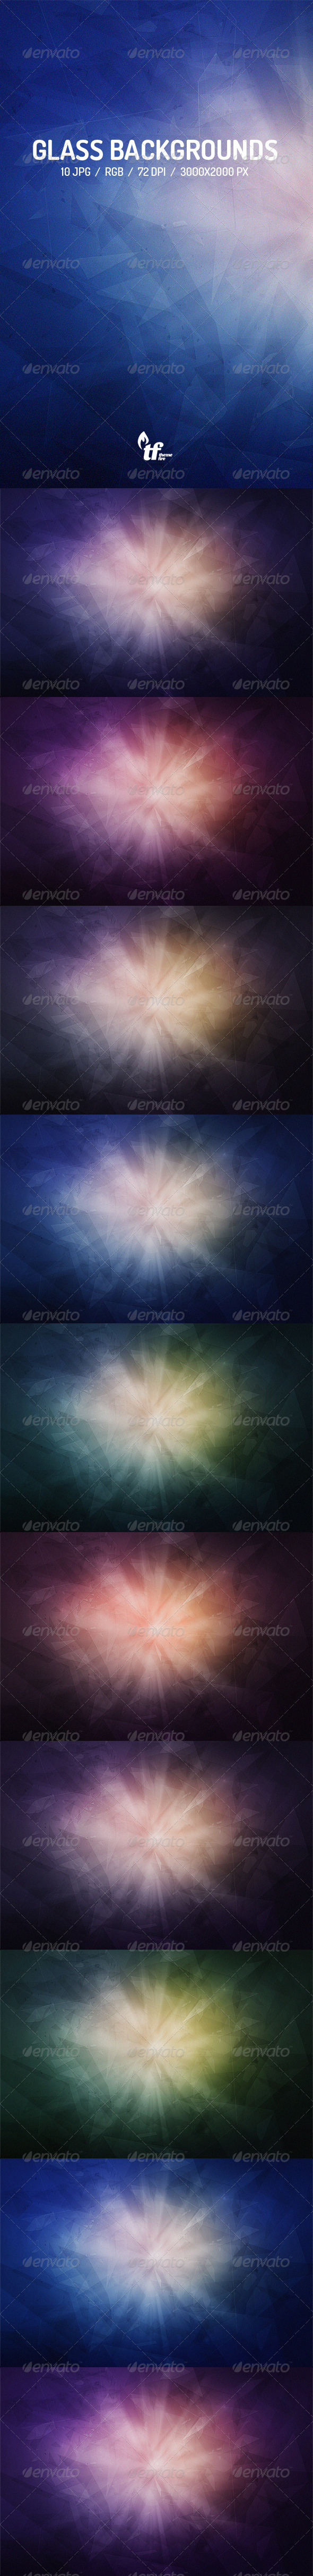 GraphicRiver Broken Glass Backgrounds 7560738